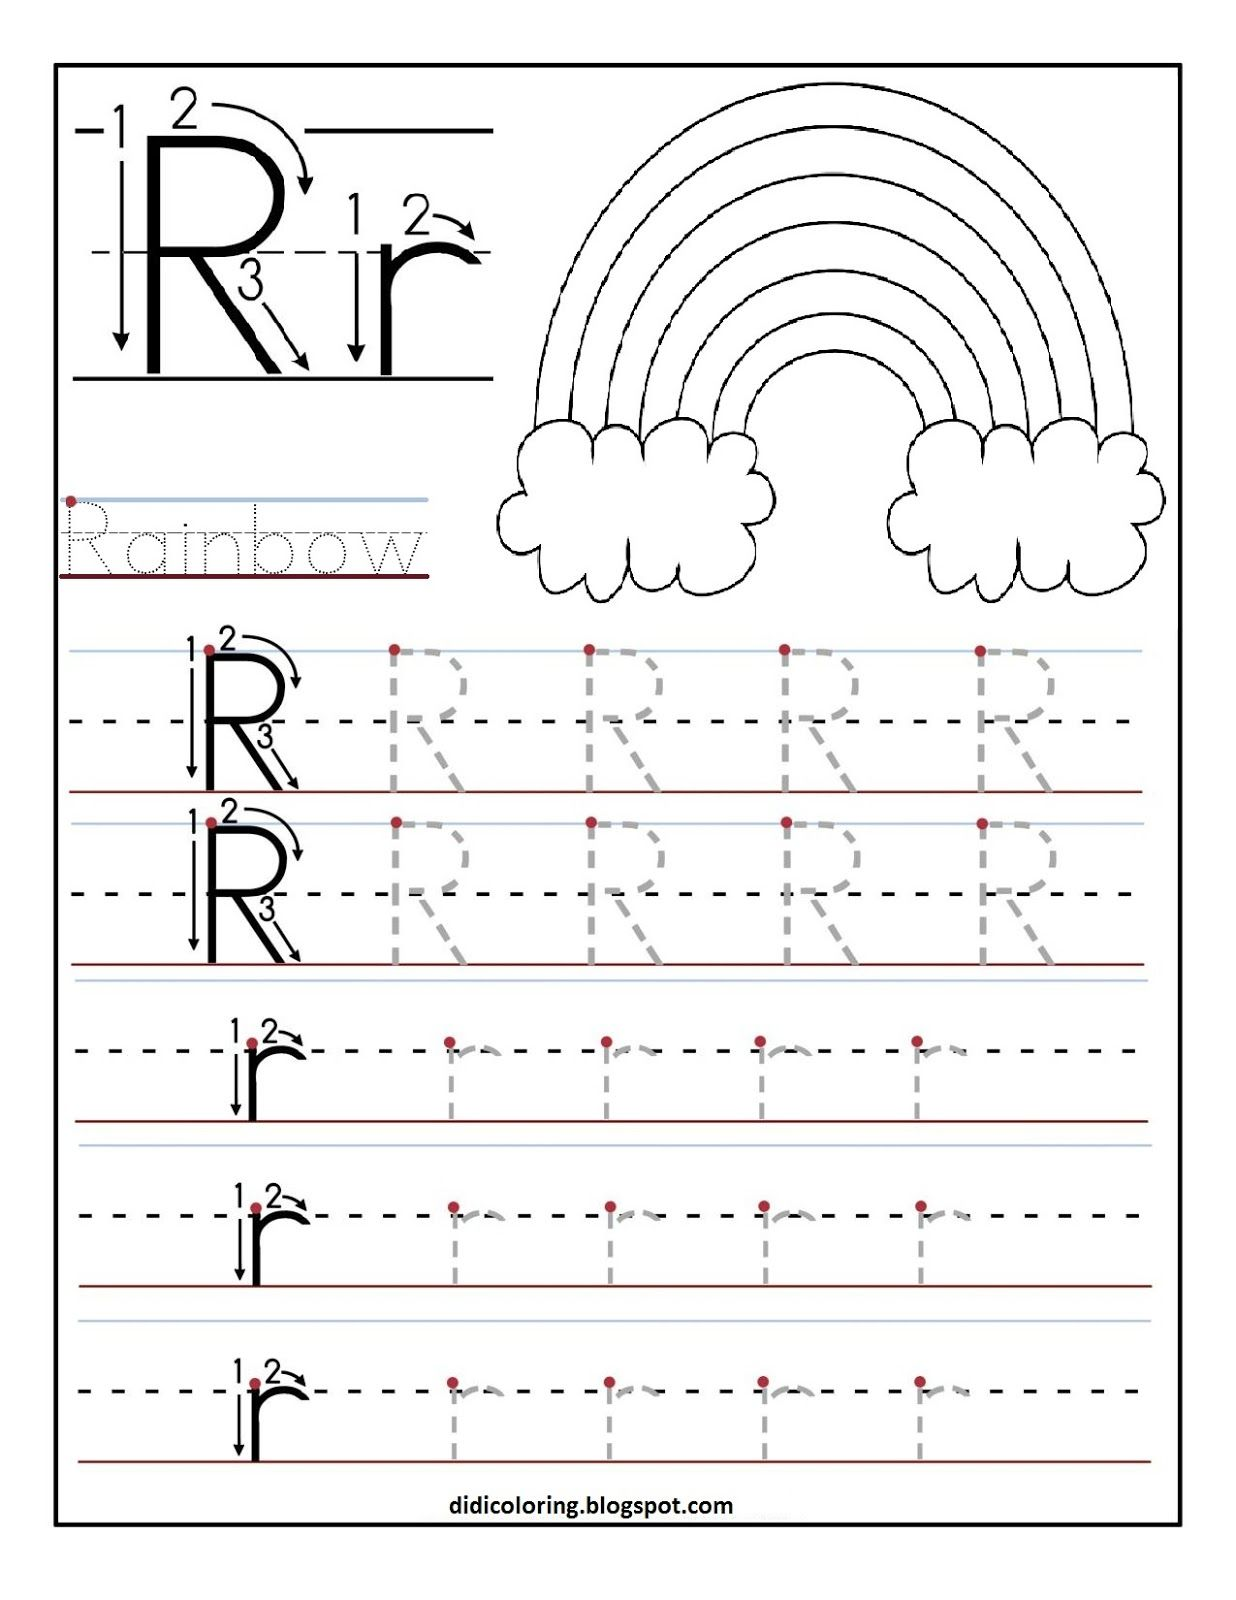 Worksheet Letter R Worksheets 1000 images about letter r preschool activities on pinterest letters coloring and maze